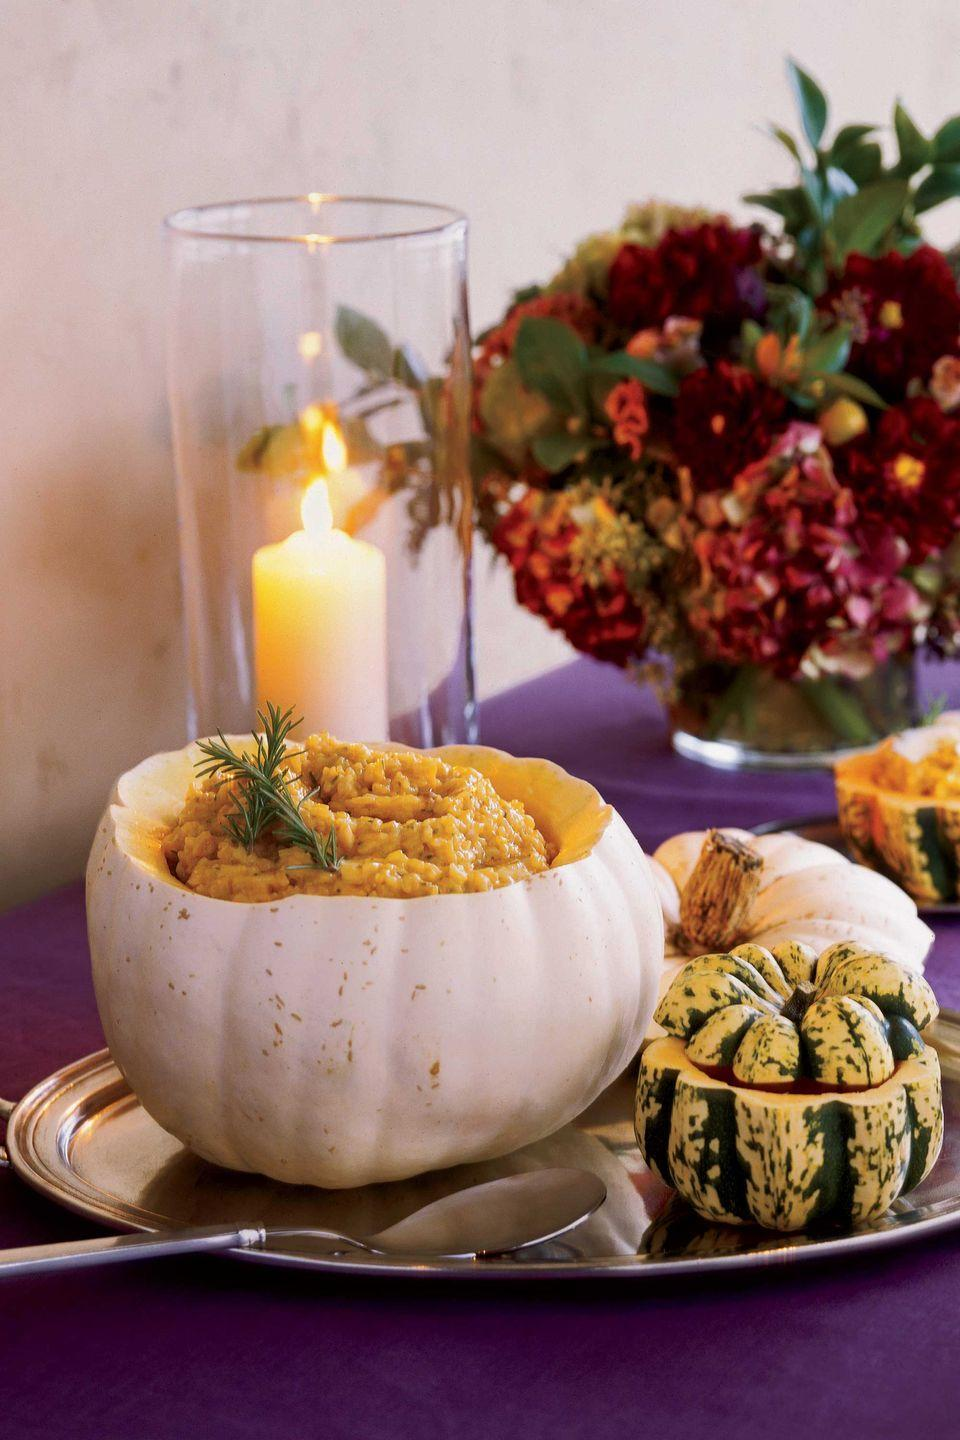 """<p>Panettone stuffing and roasted pumpkin risotto are tasty dishes, especially when served in festive hollowed-out gourds.</p><p><strong><a href=""""https://www.countryliving.com/food-drinks/recipes/a1991/pumpkin-risotto-butter-clv1107/"""" rel=""""nofollow noopener"""" target=""""_blank"""" data-ylk=""""slk:Get the recipe"""" class=""""link rapid-noclick-resp"""">Get the recipe</a>.</strong></p>"""